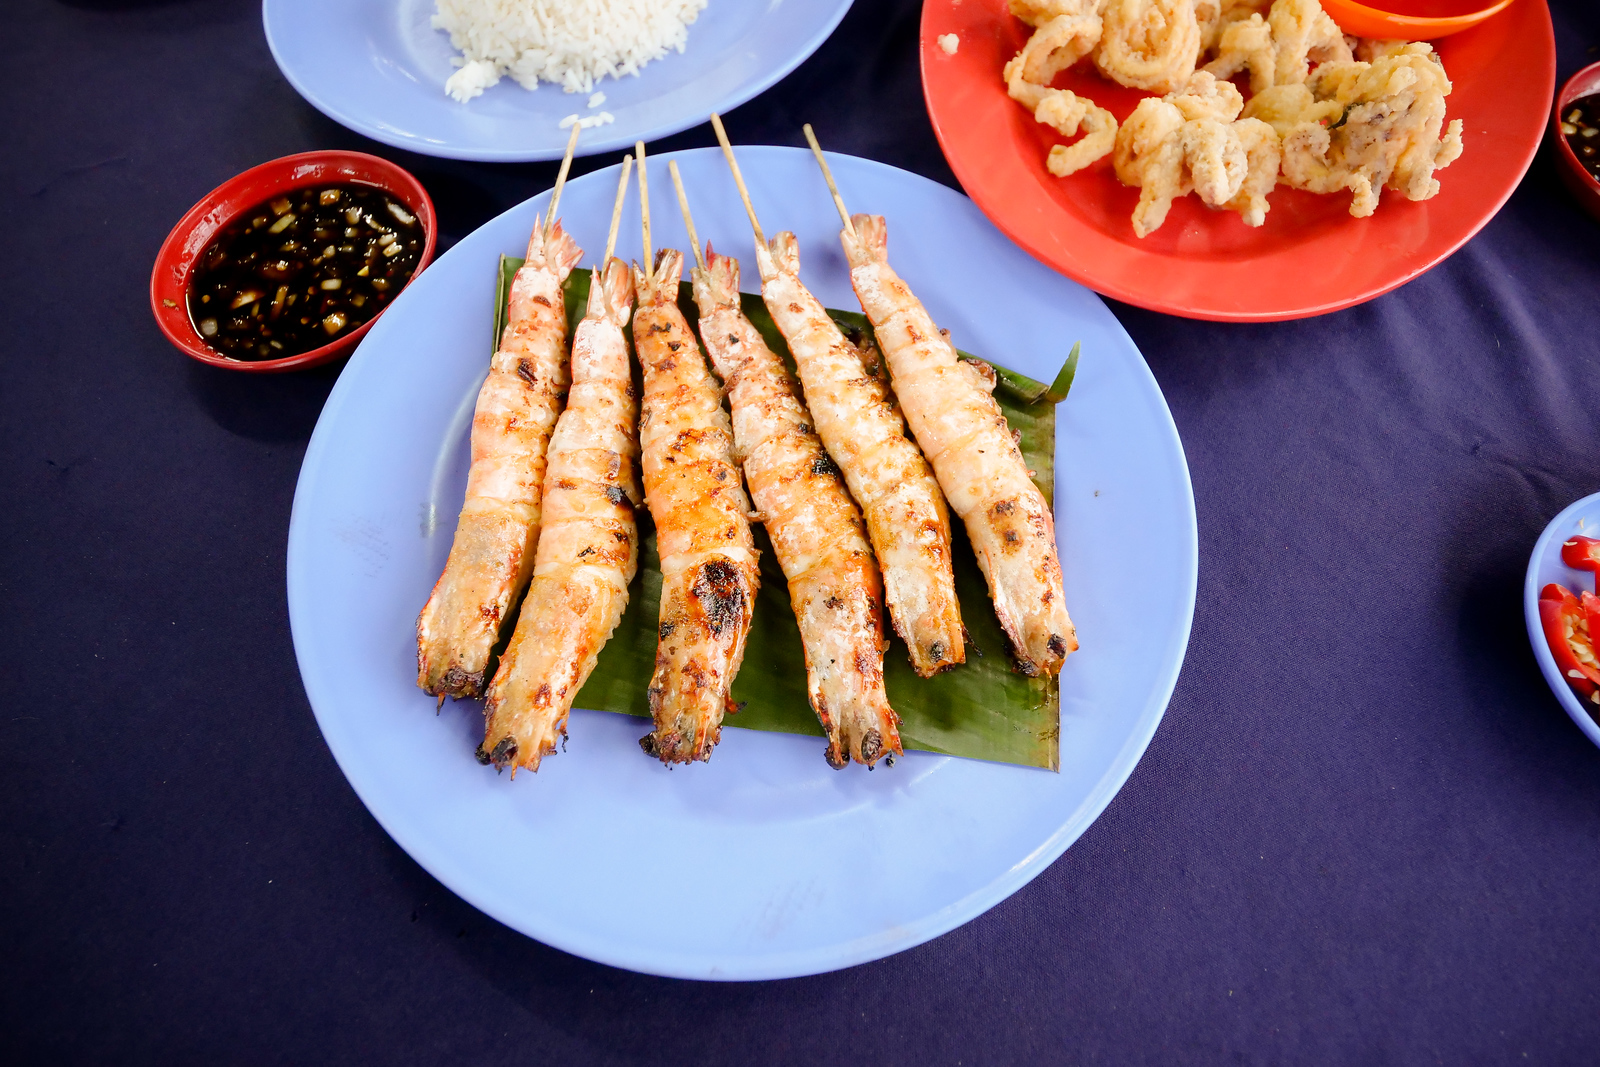 Salted Grilled Shrimp at Melaka's best restaurants Ikan Bakar Hj Musa